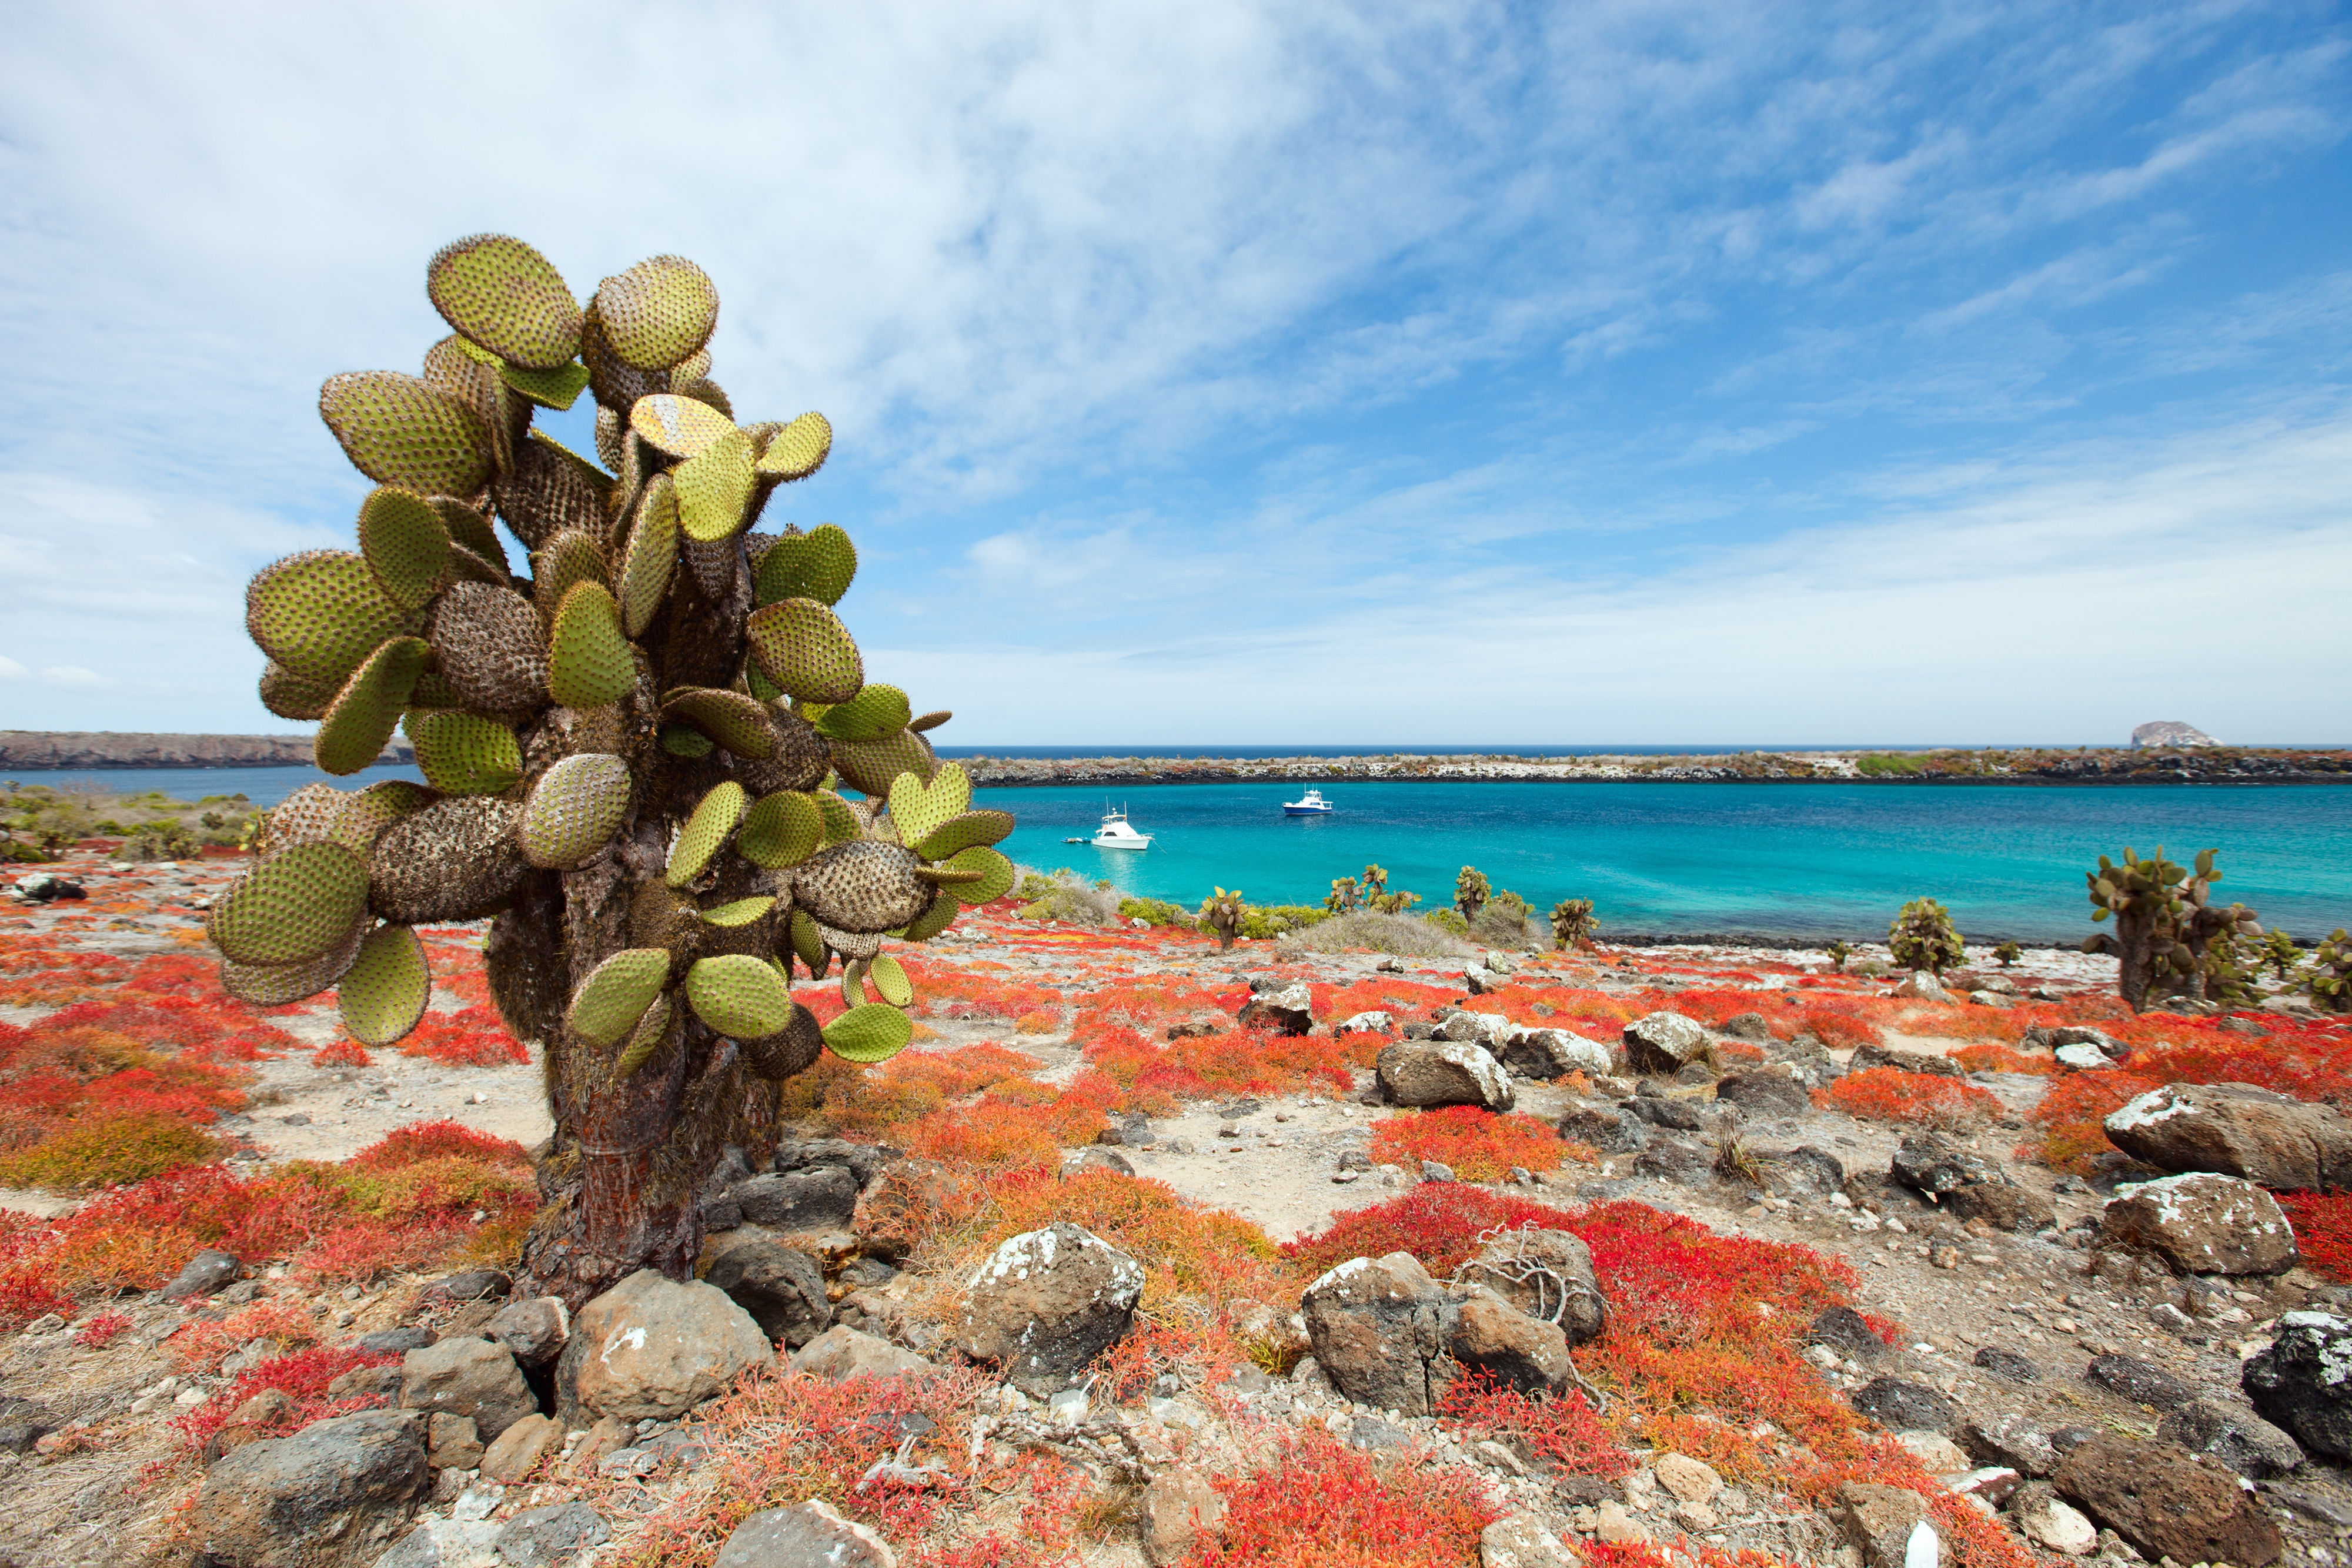 Top 5 Islands to Visit in the Galapagos